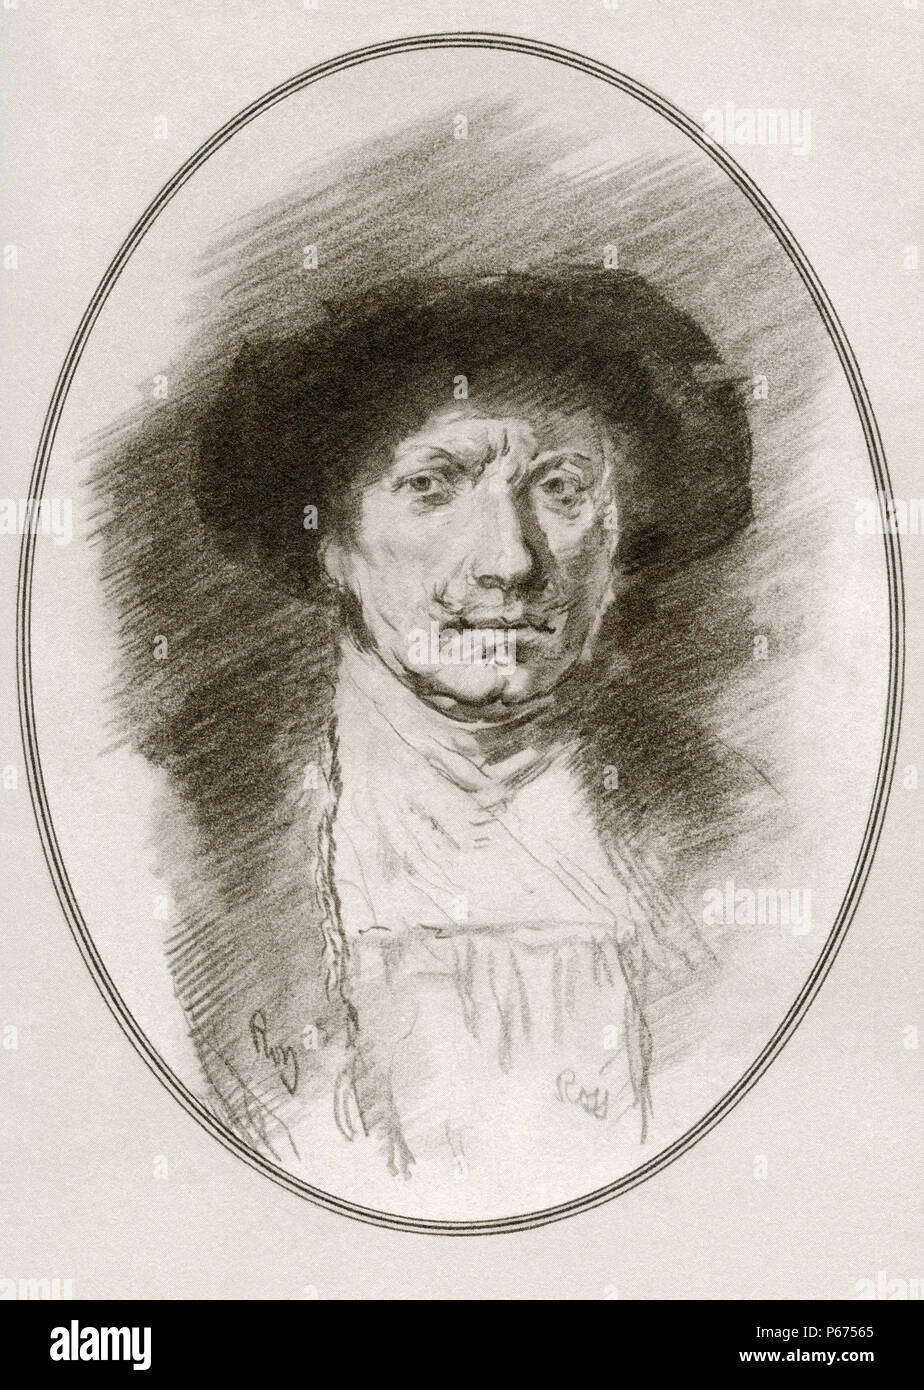 Rembrandt Harmenszoon van Rijn, 1606 -1669.  Dutch draughtsman, painter, and printmaker.  Illustration by Gordon Ross, American artist and illustrator (1873-1946), from Living Biographies of Great Painters. - Stock Image